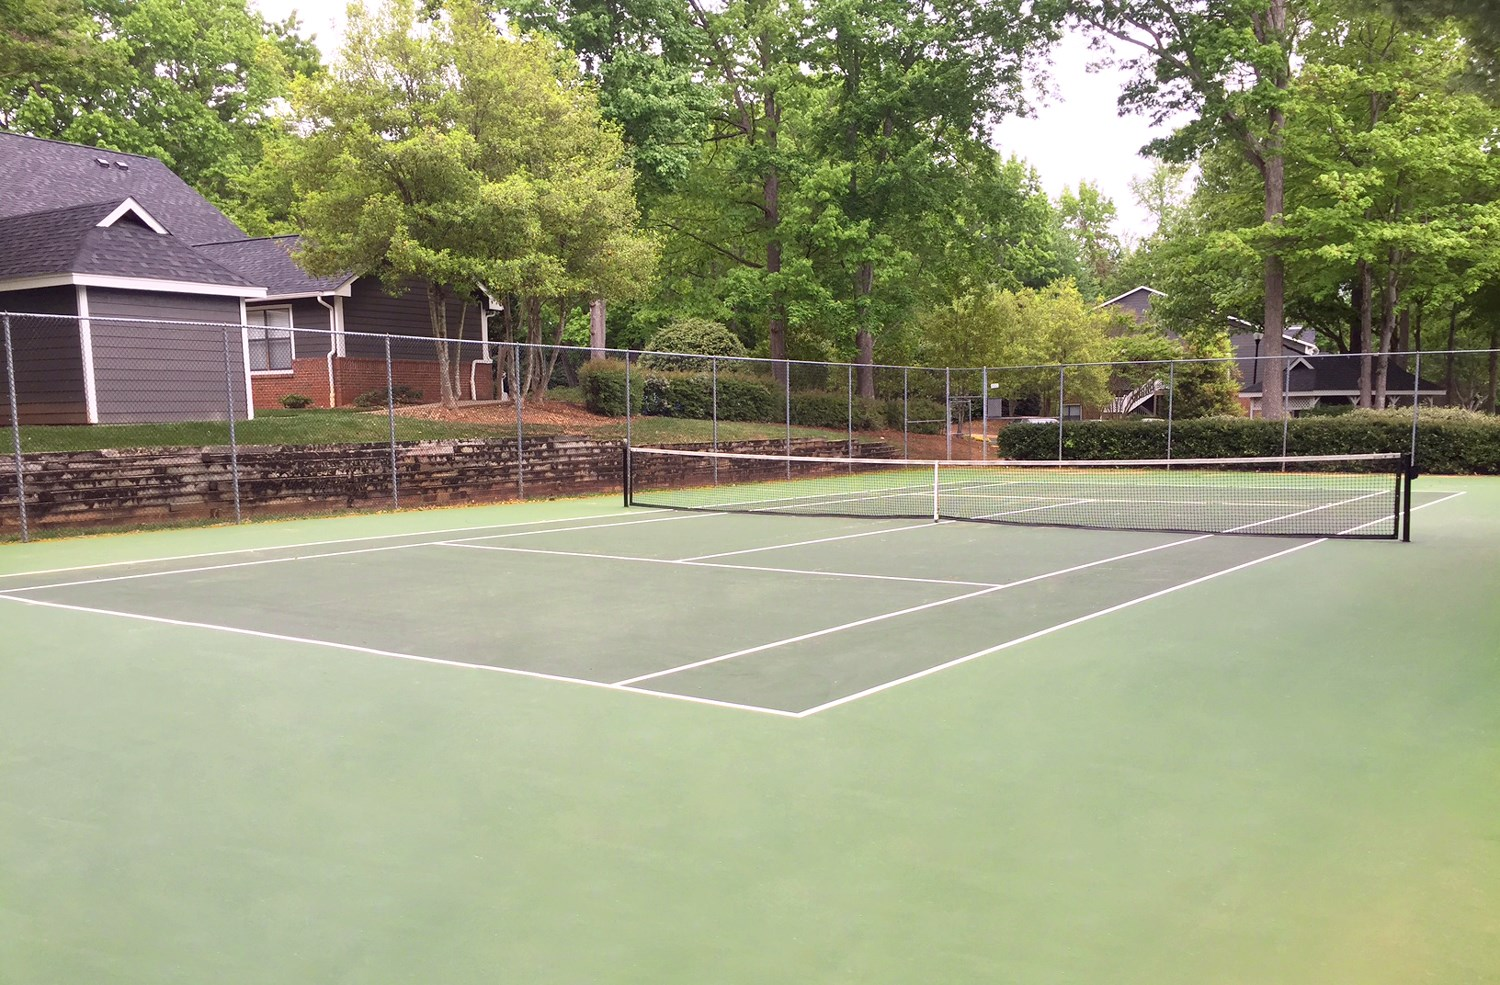 Tennis Court at Amberwood at Lochmere Apartments in Cary, NC